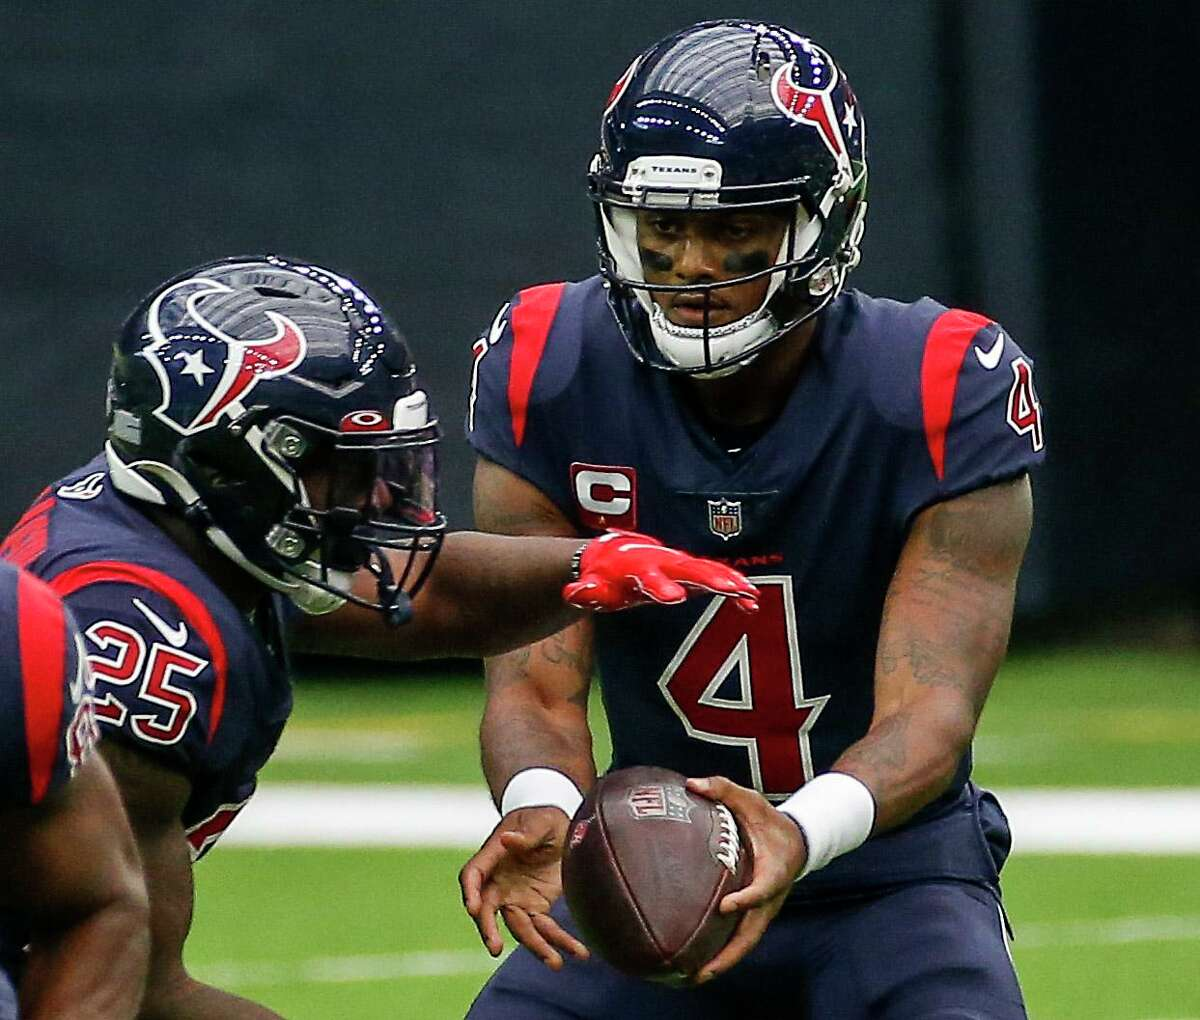 Quarterback Deshaun Watson (4) hasn't seen the greatest results after handing off to the Texans' running backs, Duke Johnson included.